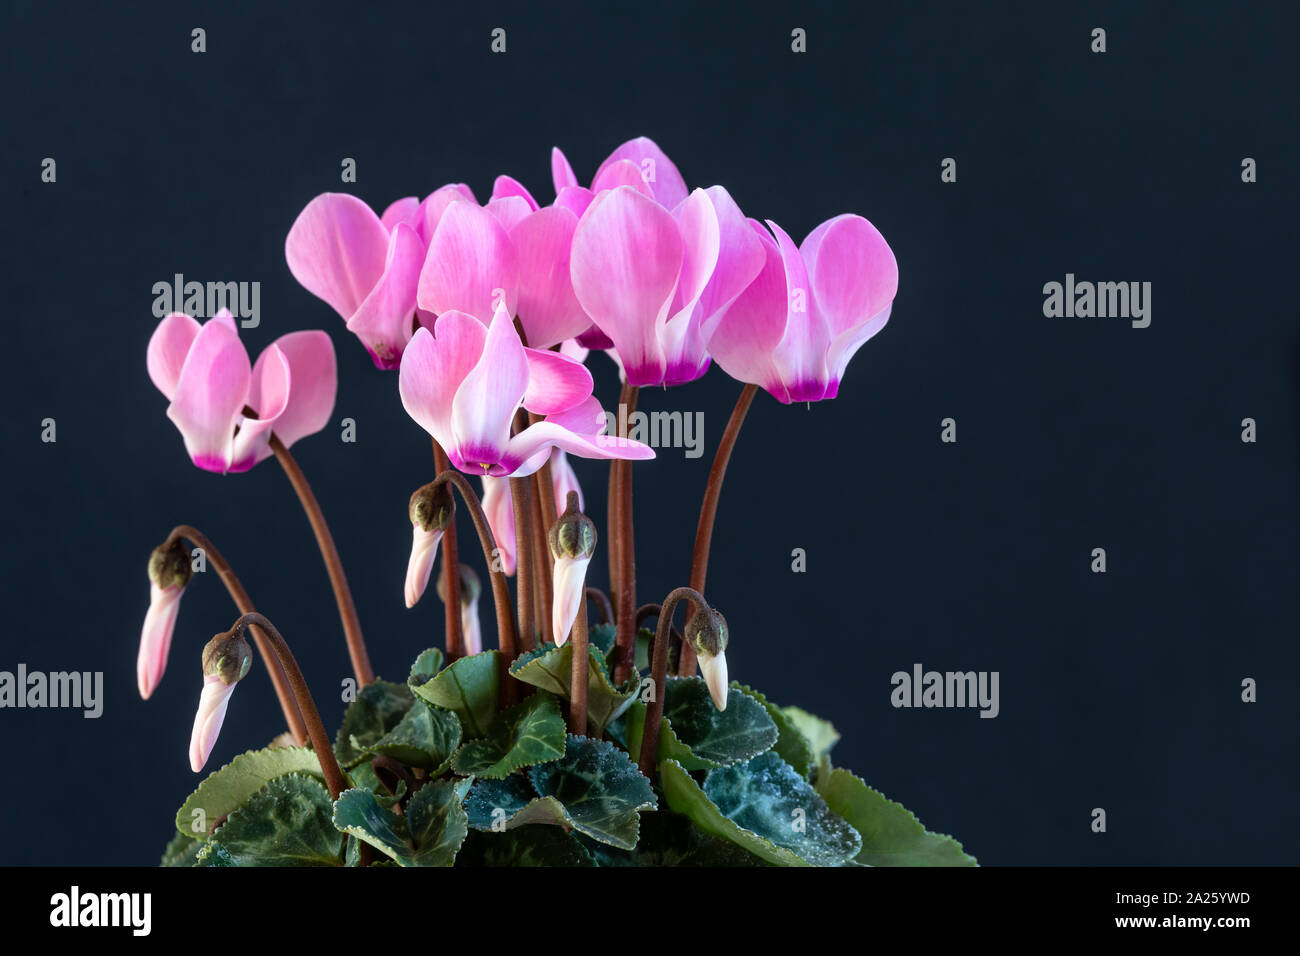 A potted pink Cyclamen against a dark background Stock Photo